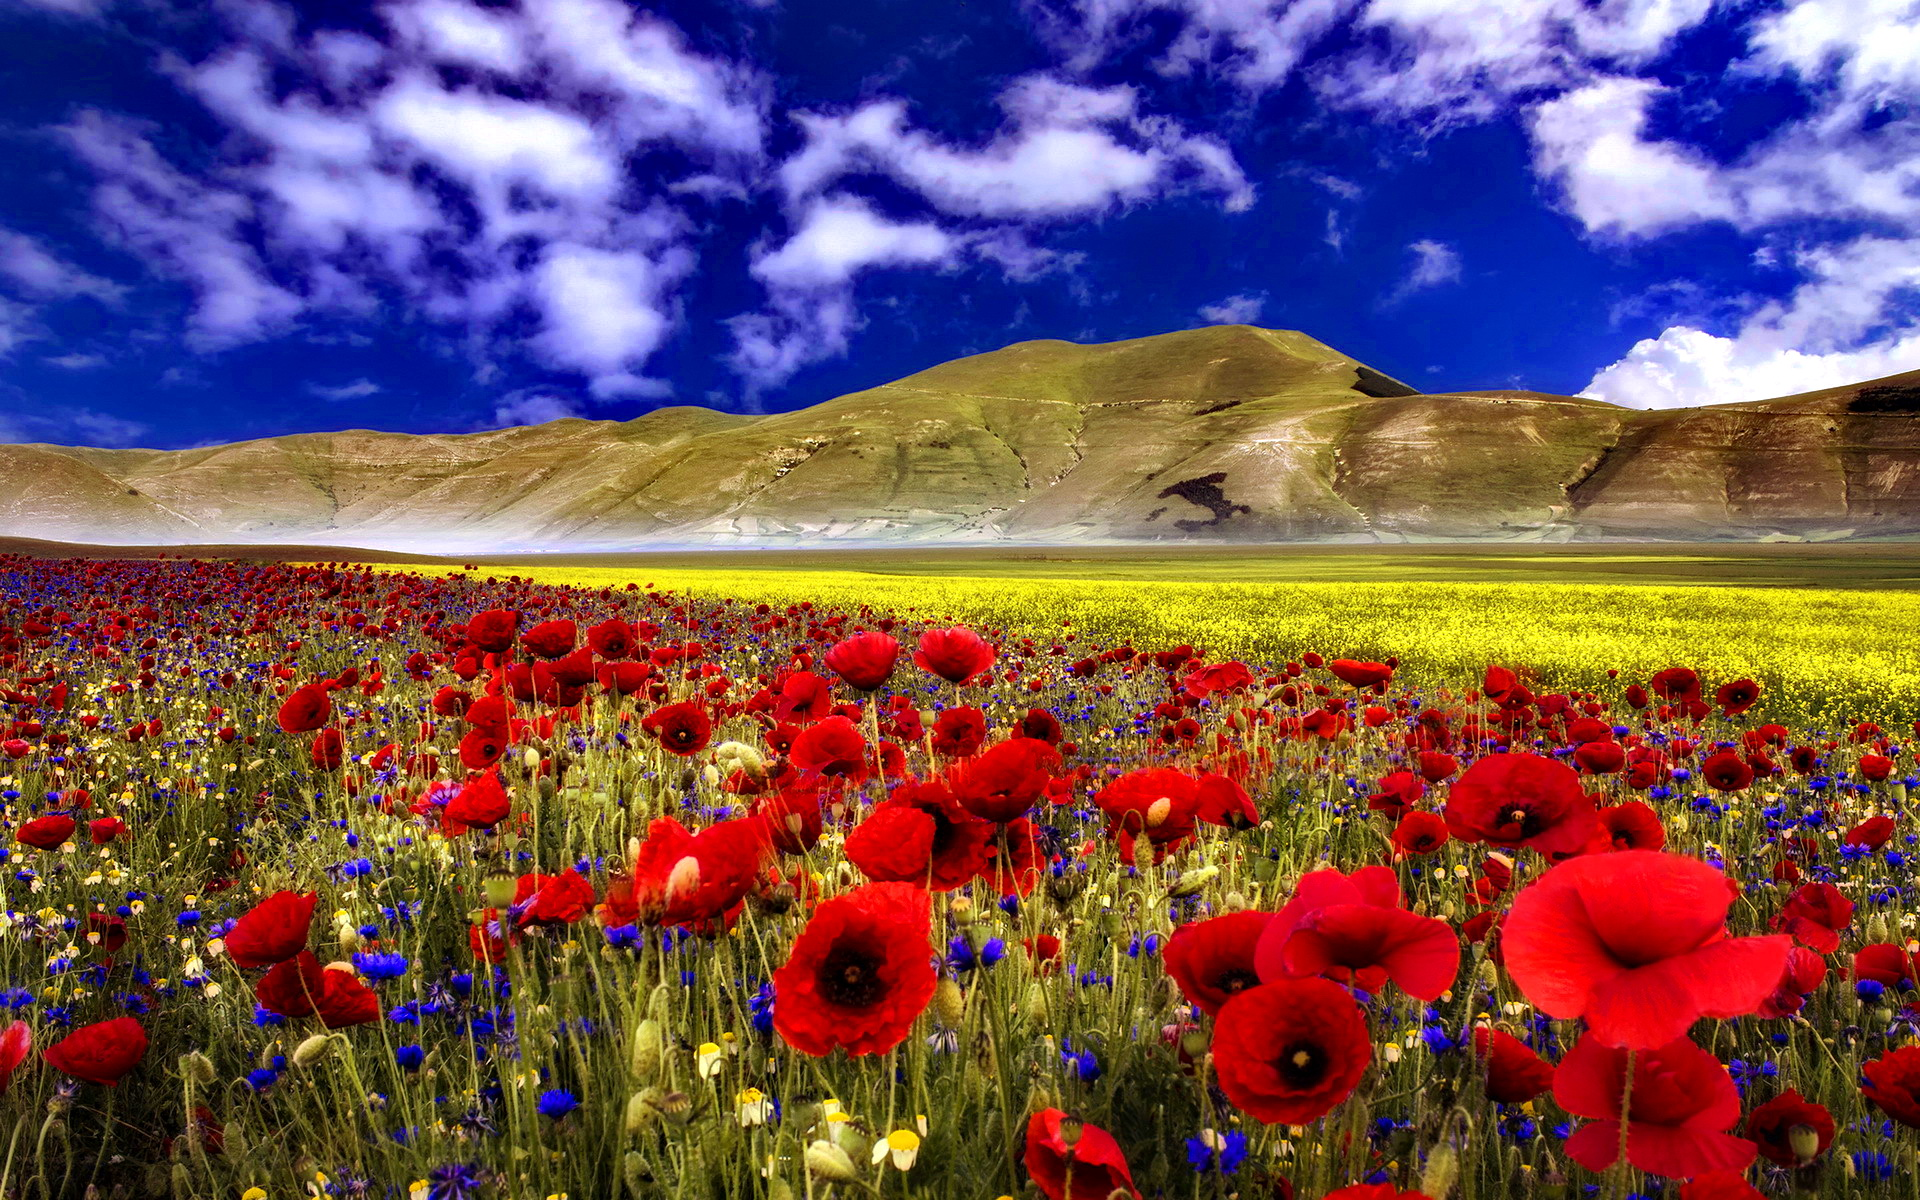 Images Of Hd Flower Field Wallpaper Spacehero